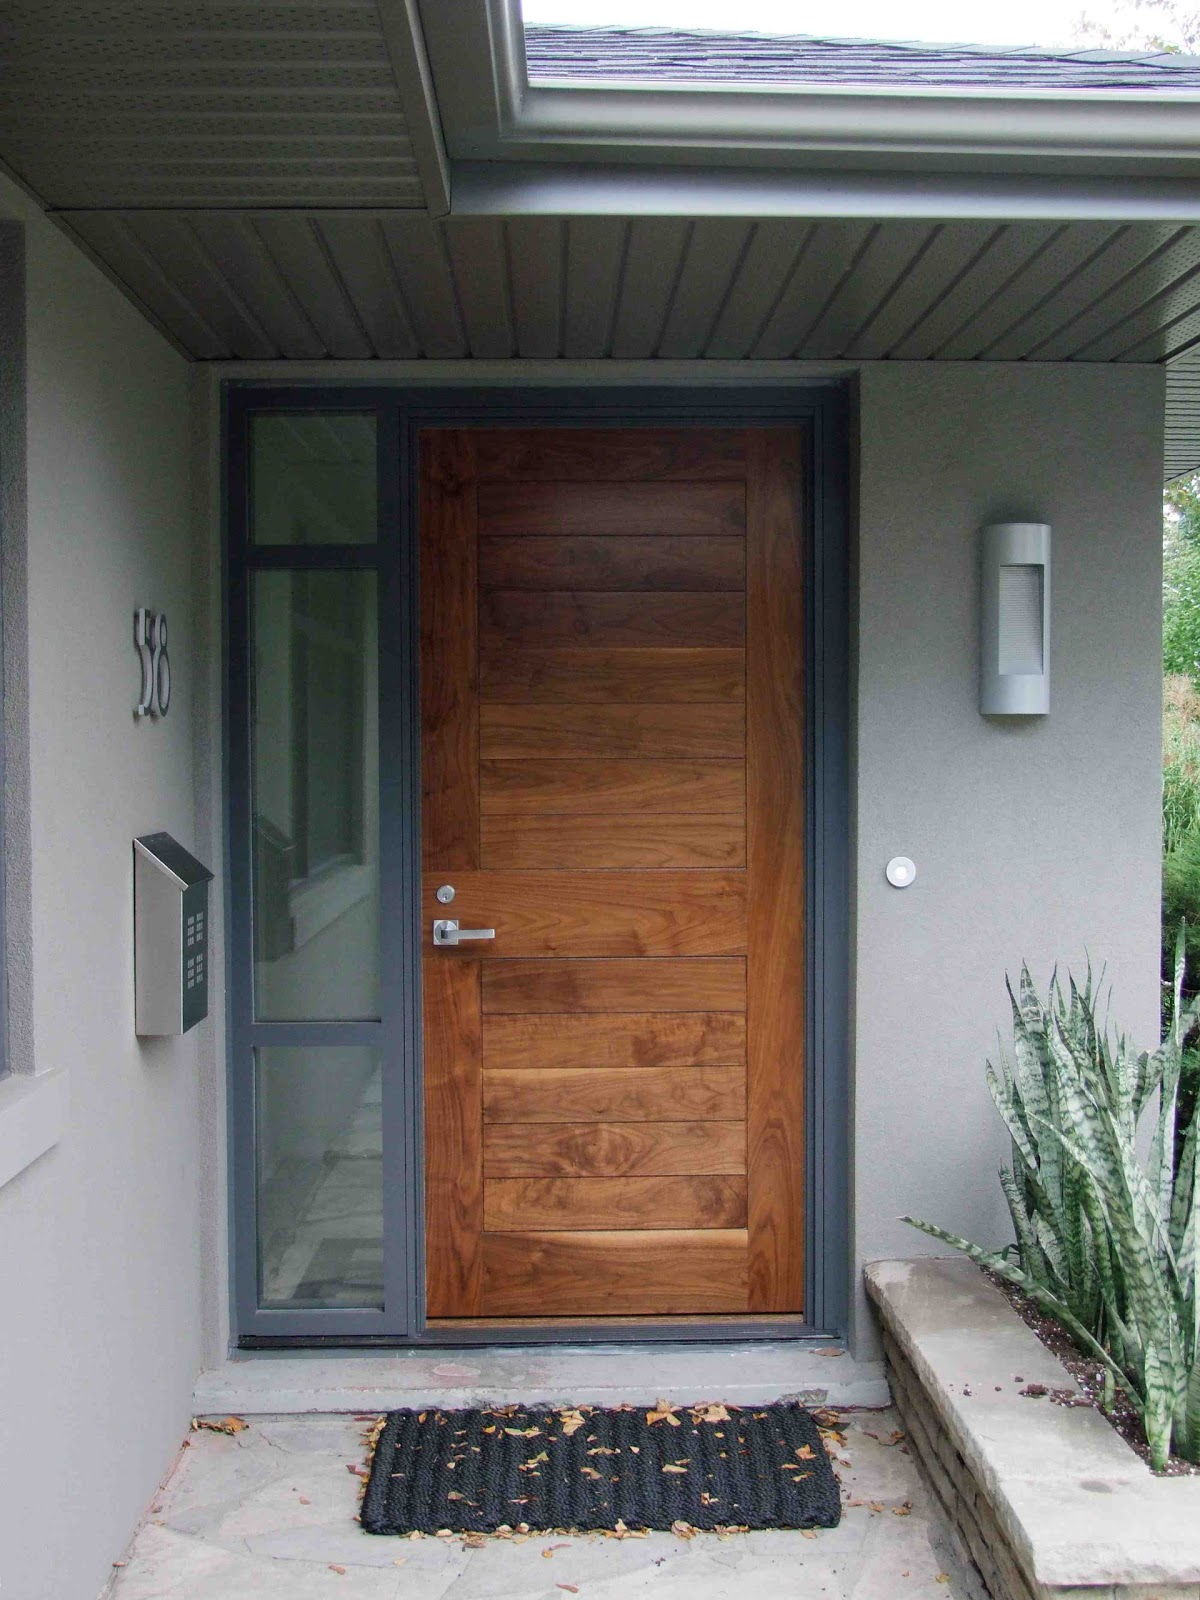 Creed 70 39 s bungalow makes a modern impression for Exterior front entry wood doors with glass